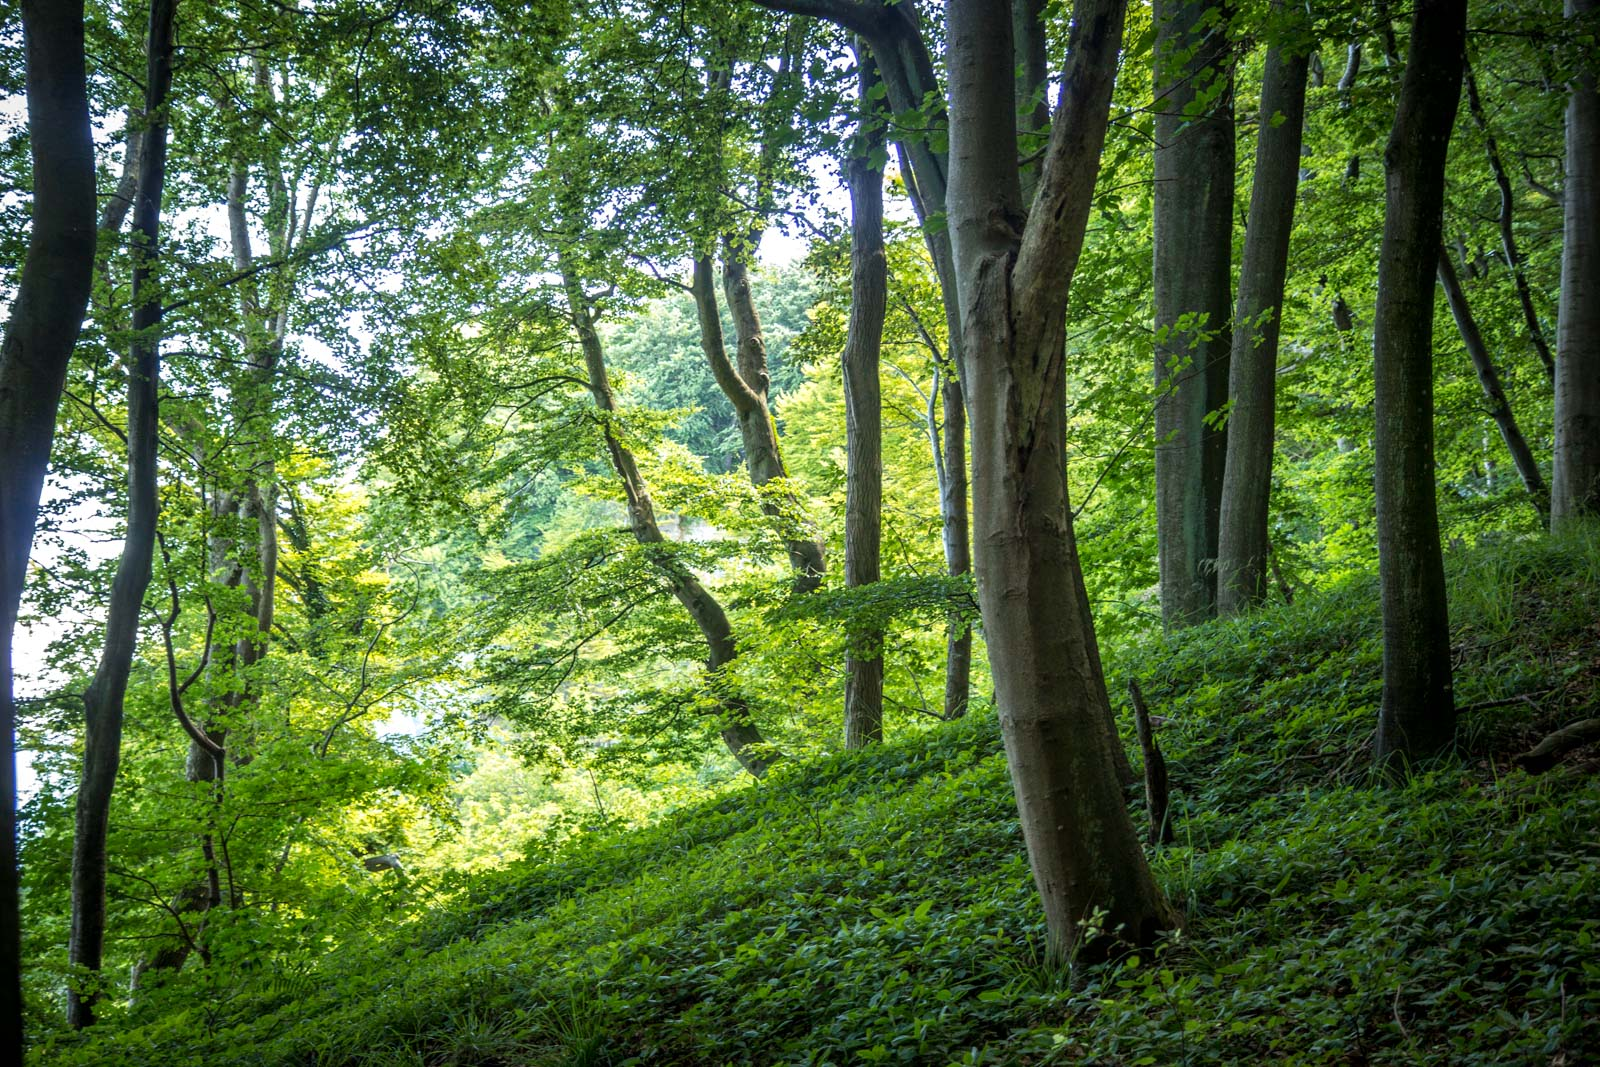 Jasmund National Park, Ancient Beech Forests of Germany